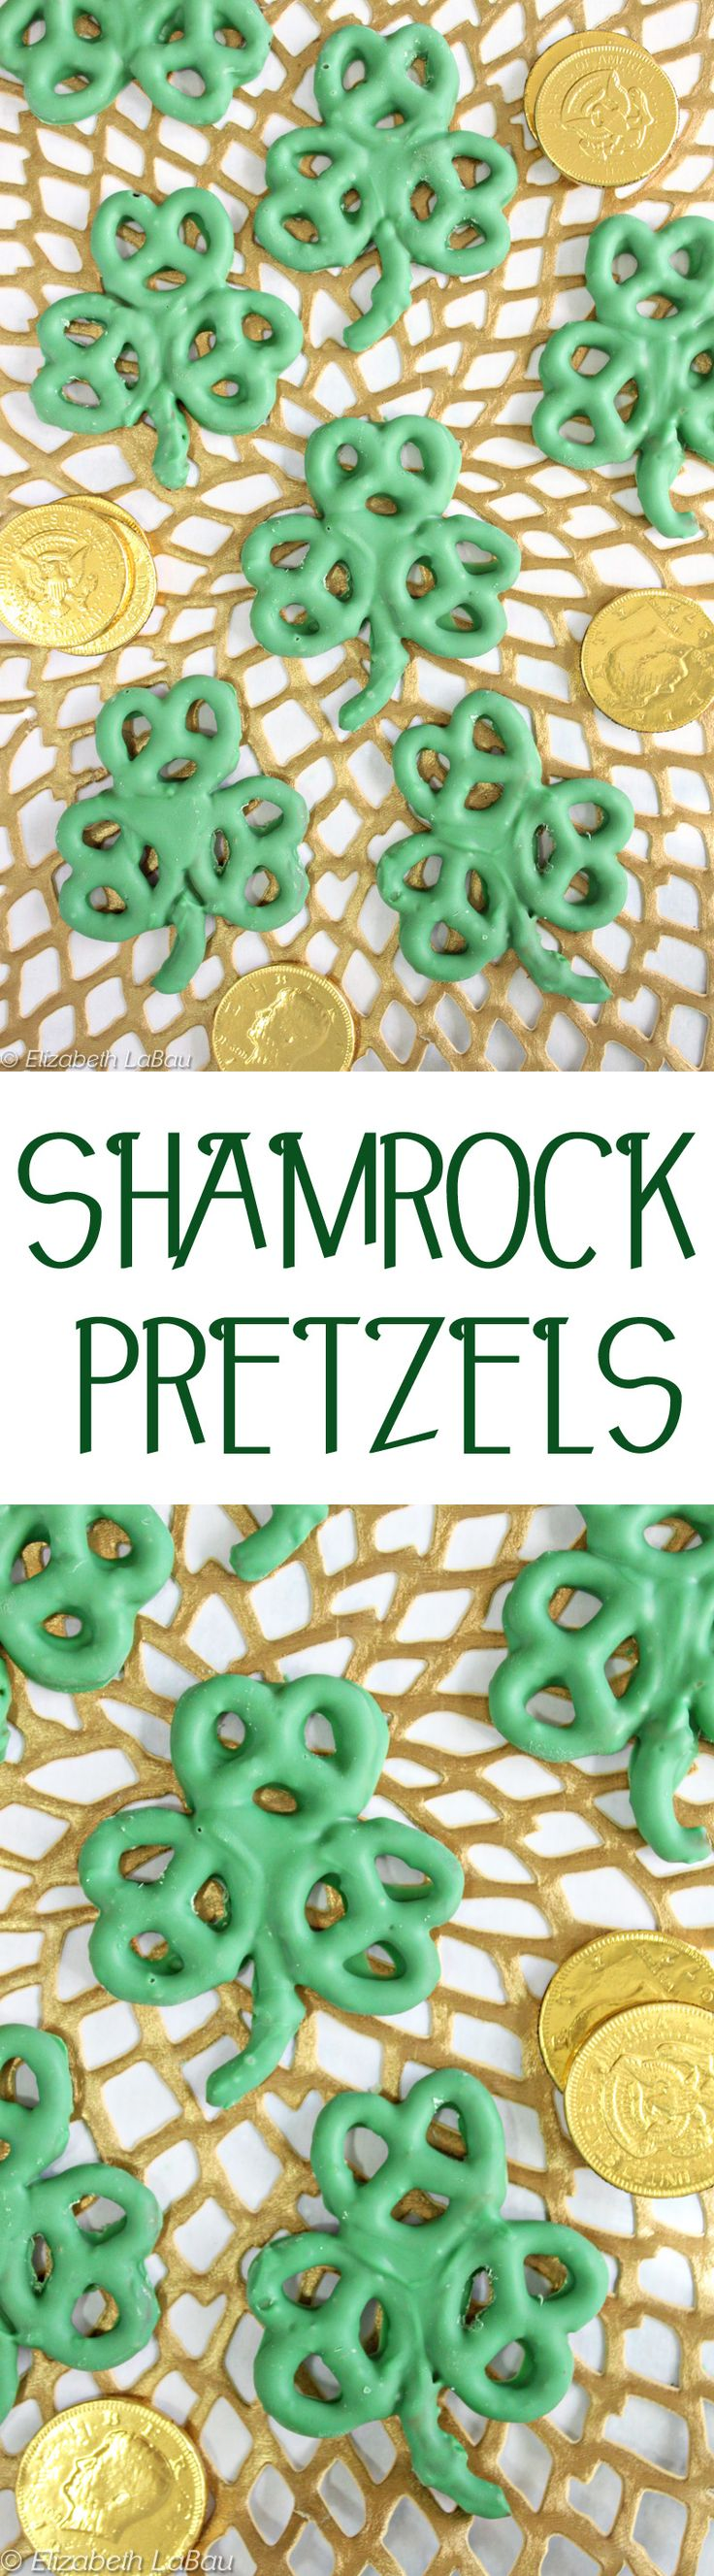 2-Ingredient Shamrock Pretzels